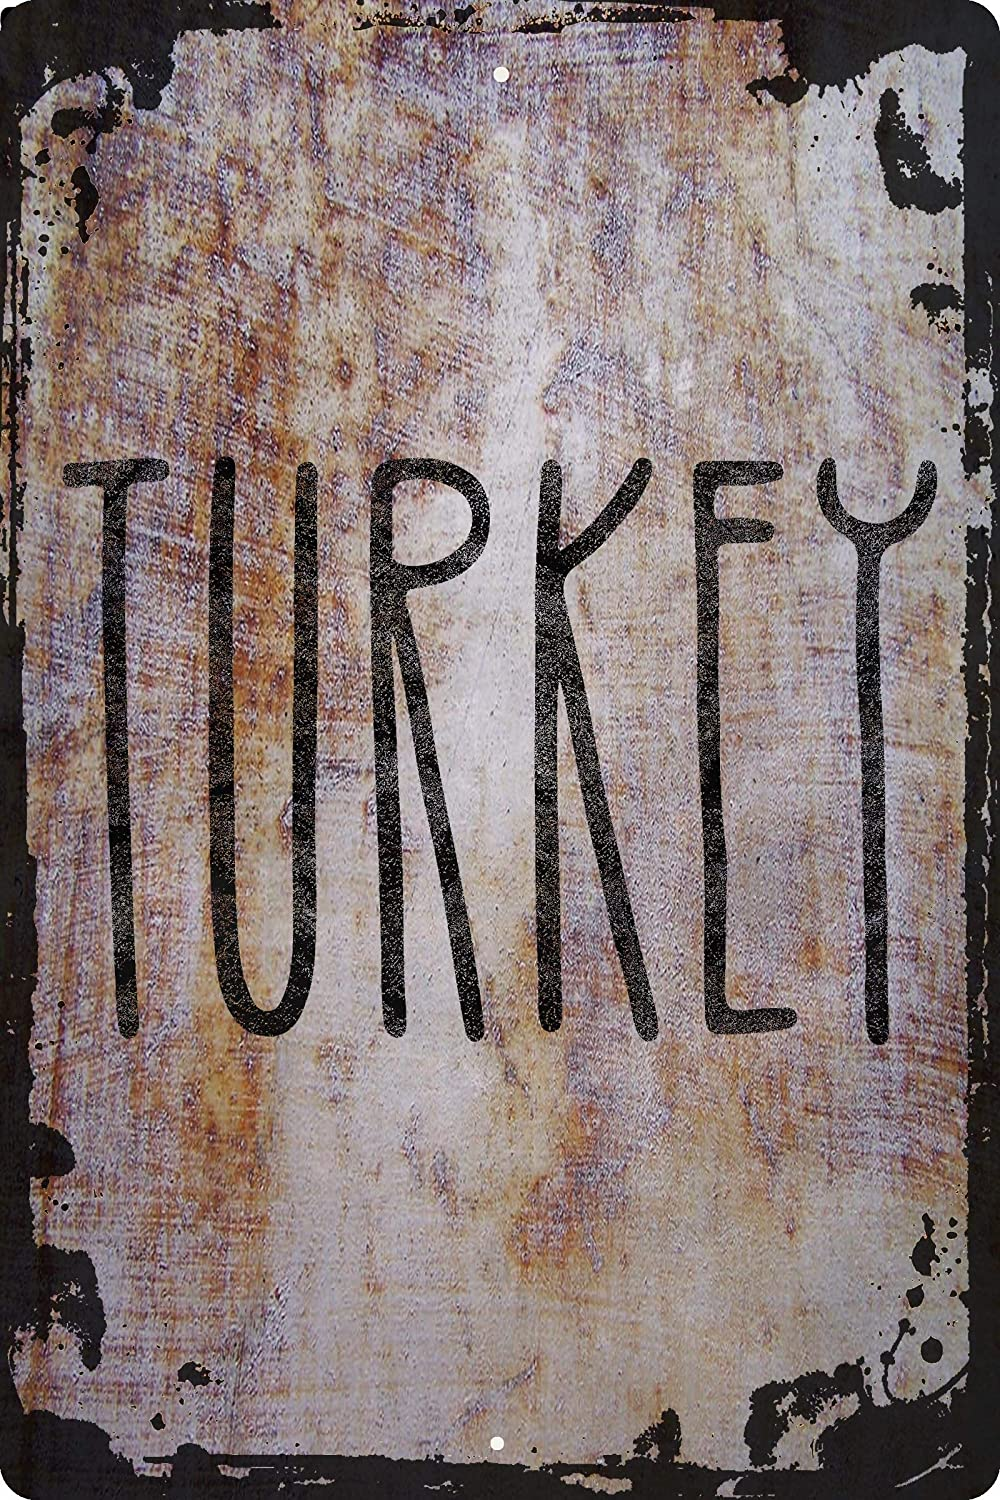 Turkey tall caps Thanksgiving food holiday tradition yummy Decorative Wall Decor Funny Gift